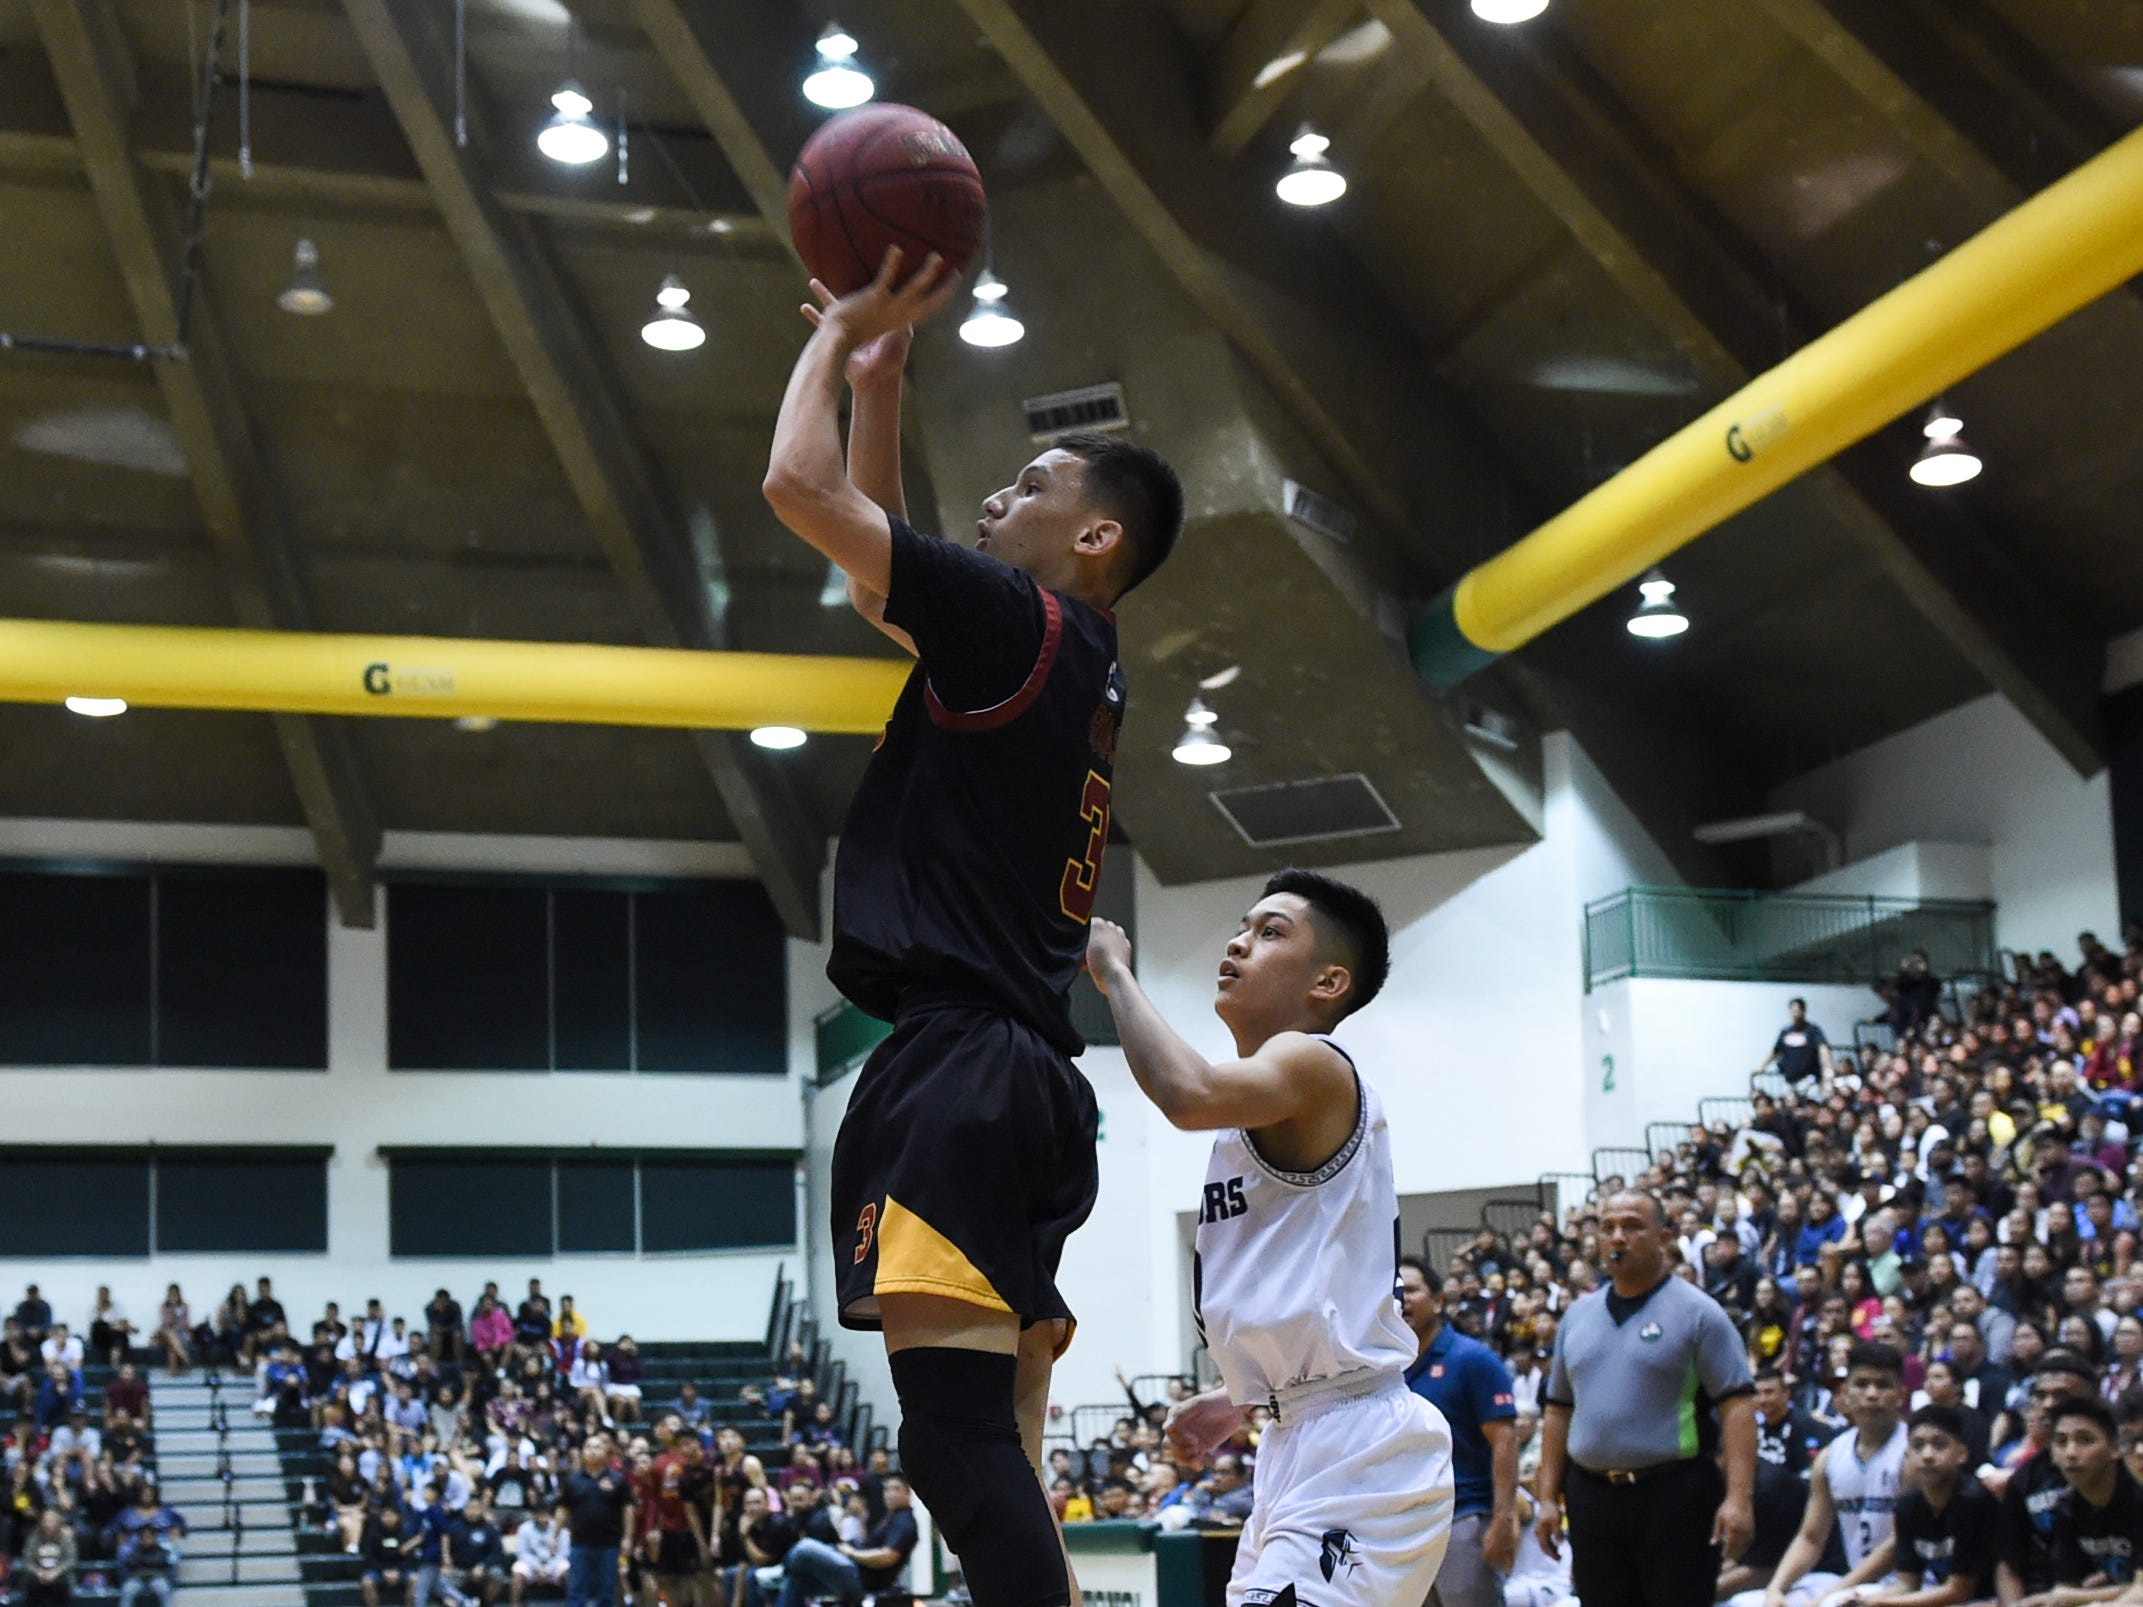 Father Duenas player Davin Rojas attempts a jump shot against the St. Paul Warriors during the IIAAG Boys' Basketball Championship game at the University of Guam Calvo Field House in Mangilao, March 15, 2019.